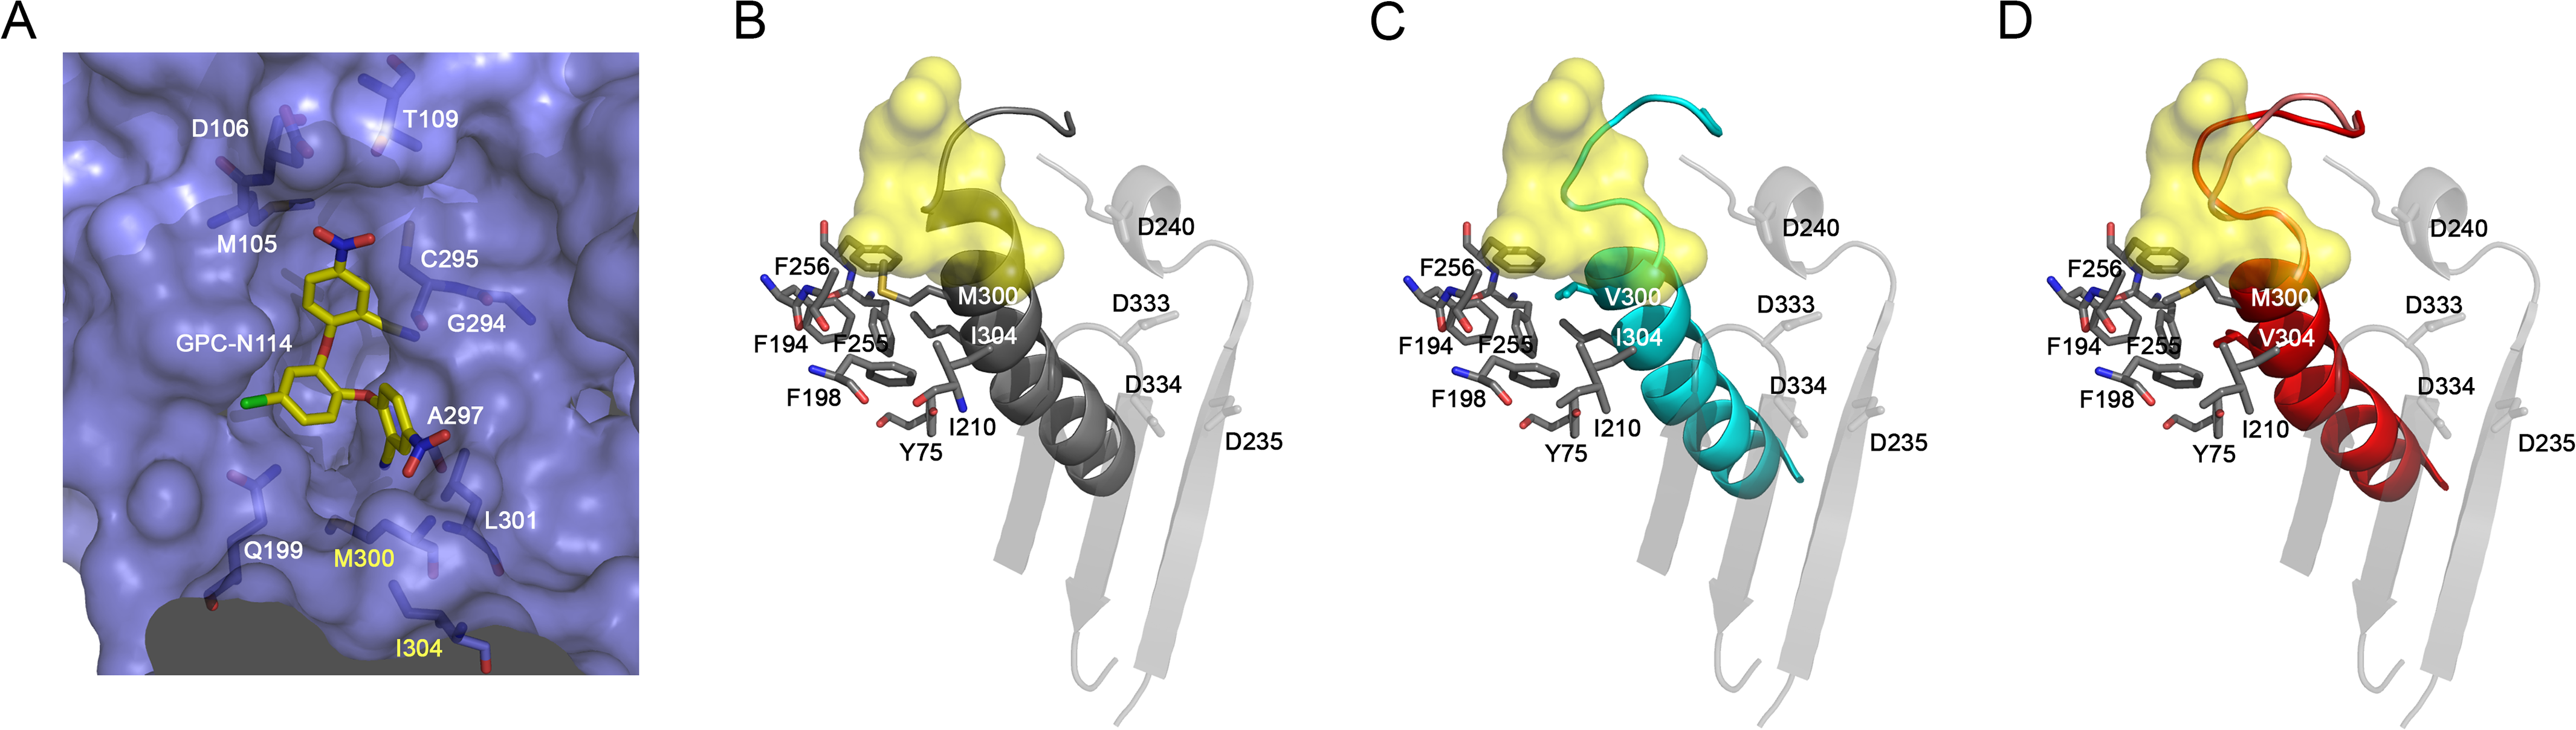 Effects of mutations M300V and I304V on the GPC-N114 binding site in EMCV 3D<sup>pol</sup>.